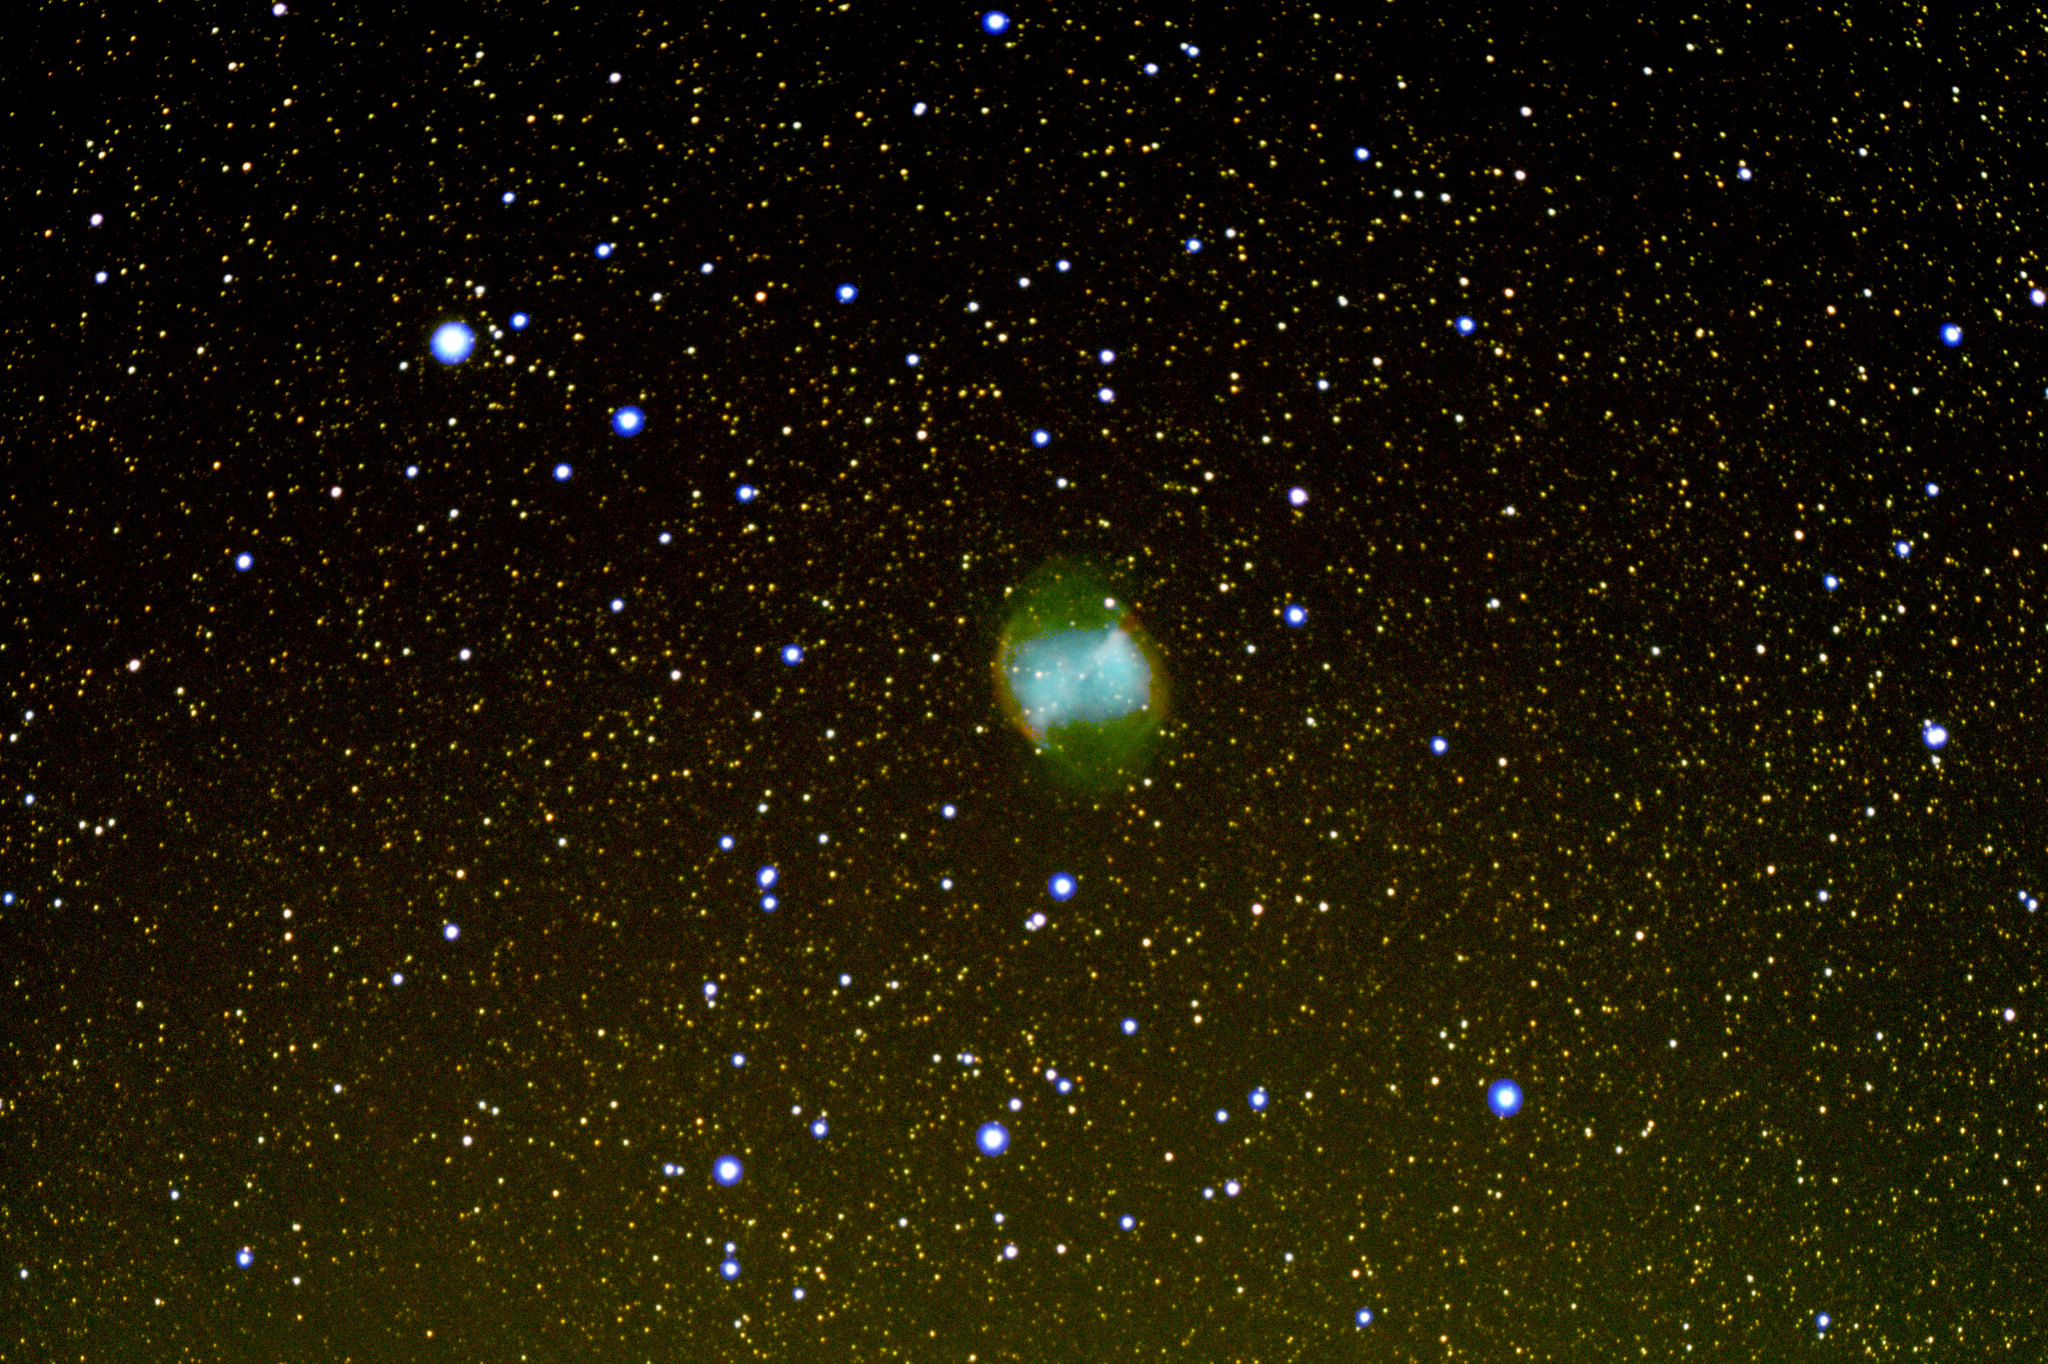 """M27 Dumbbell Nebula (Jonathan Anderson) 4"""" f10 achro on HEQ5 Pro Canon 700d (umod) @ISO 1600 120x40sec + darks, flats etc. Processed DSS & GIMP"""